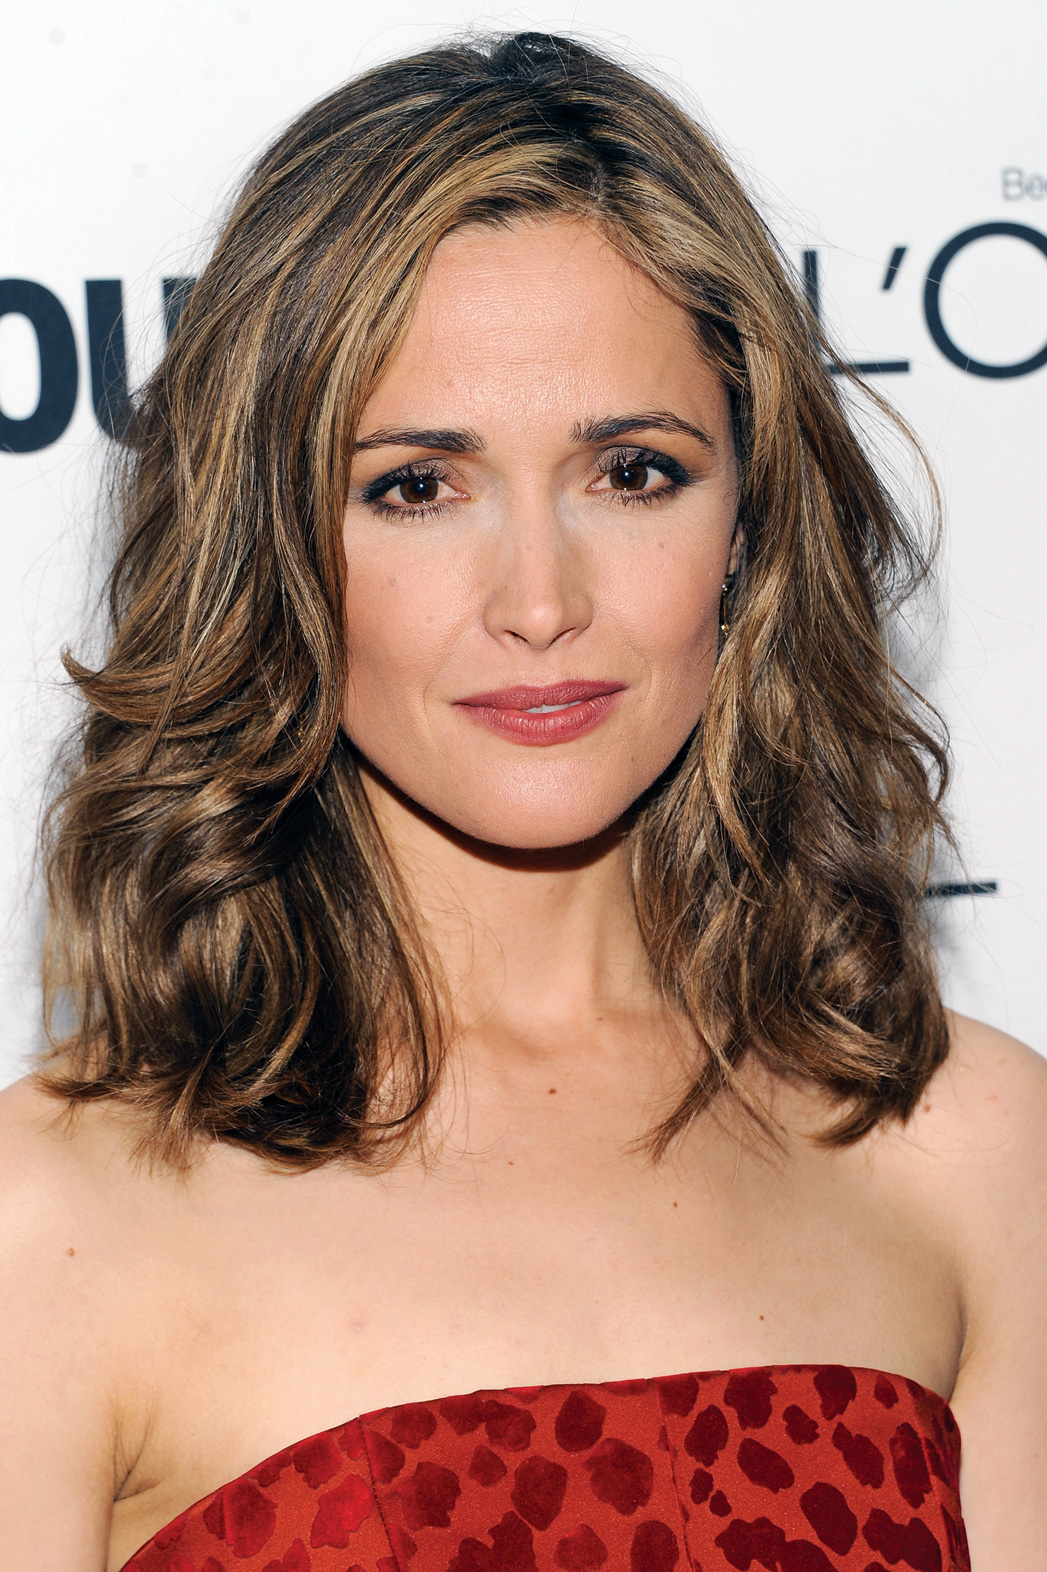 Issue 21 REP DEALS Rose Byrne - P 2014